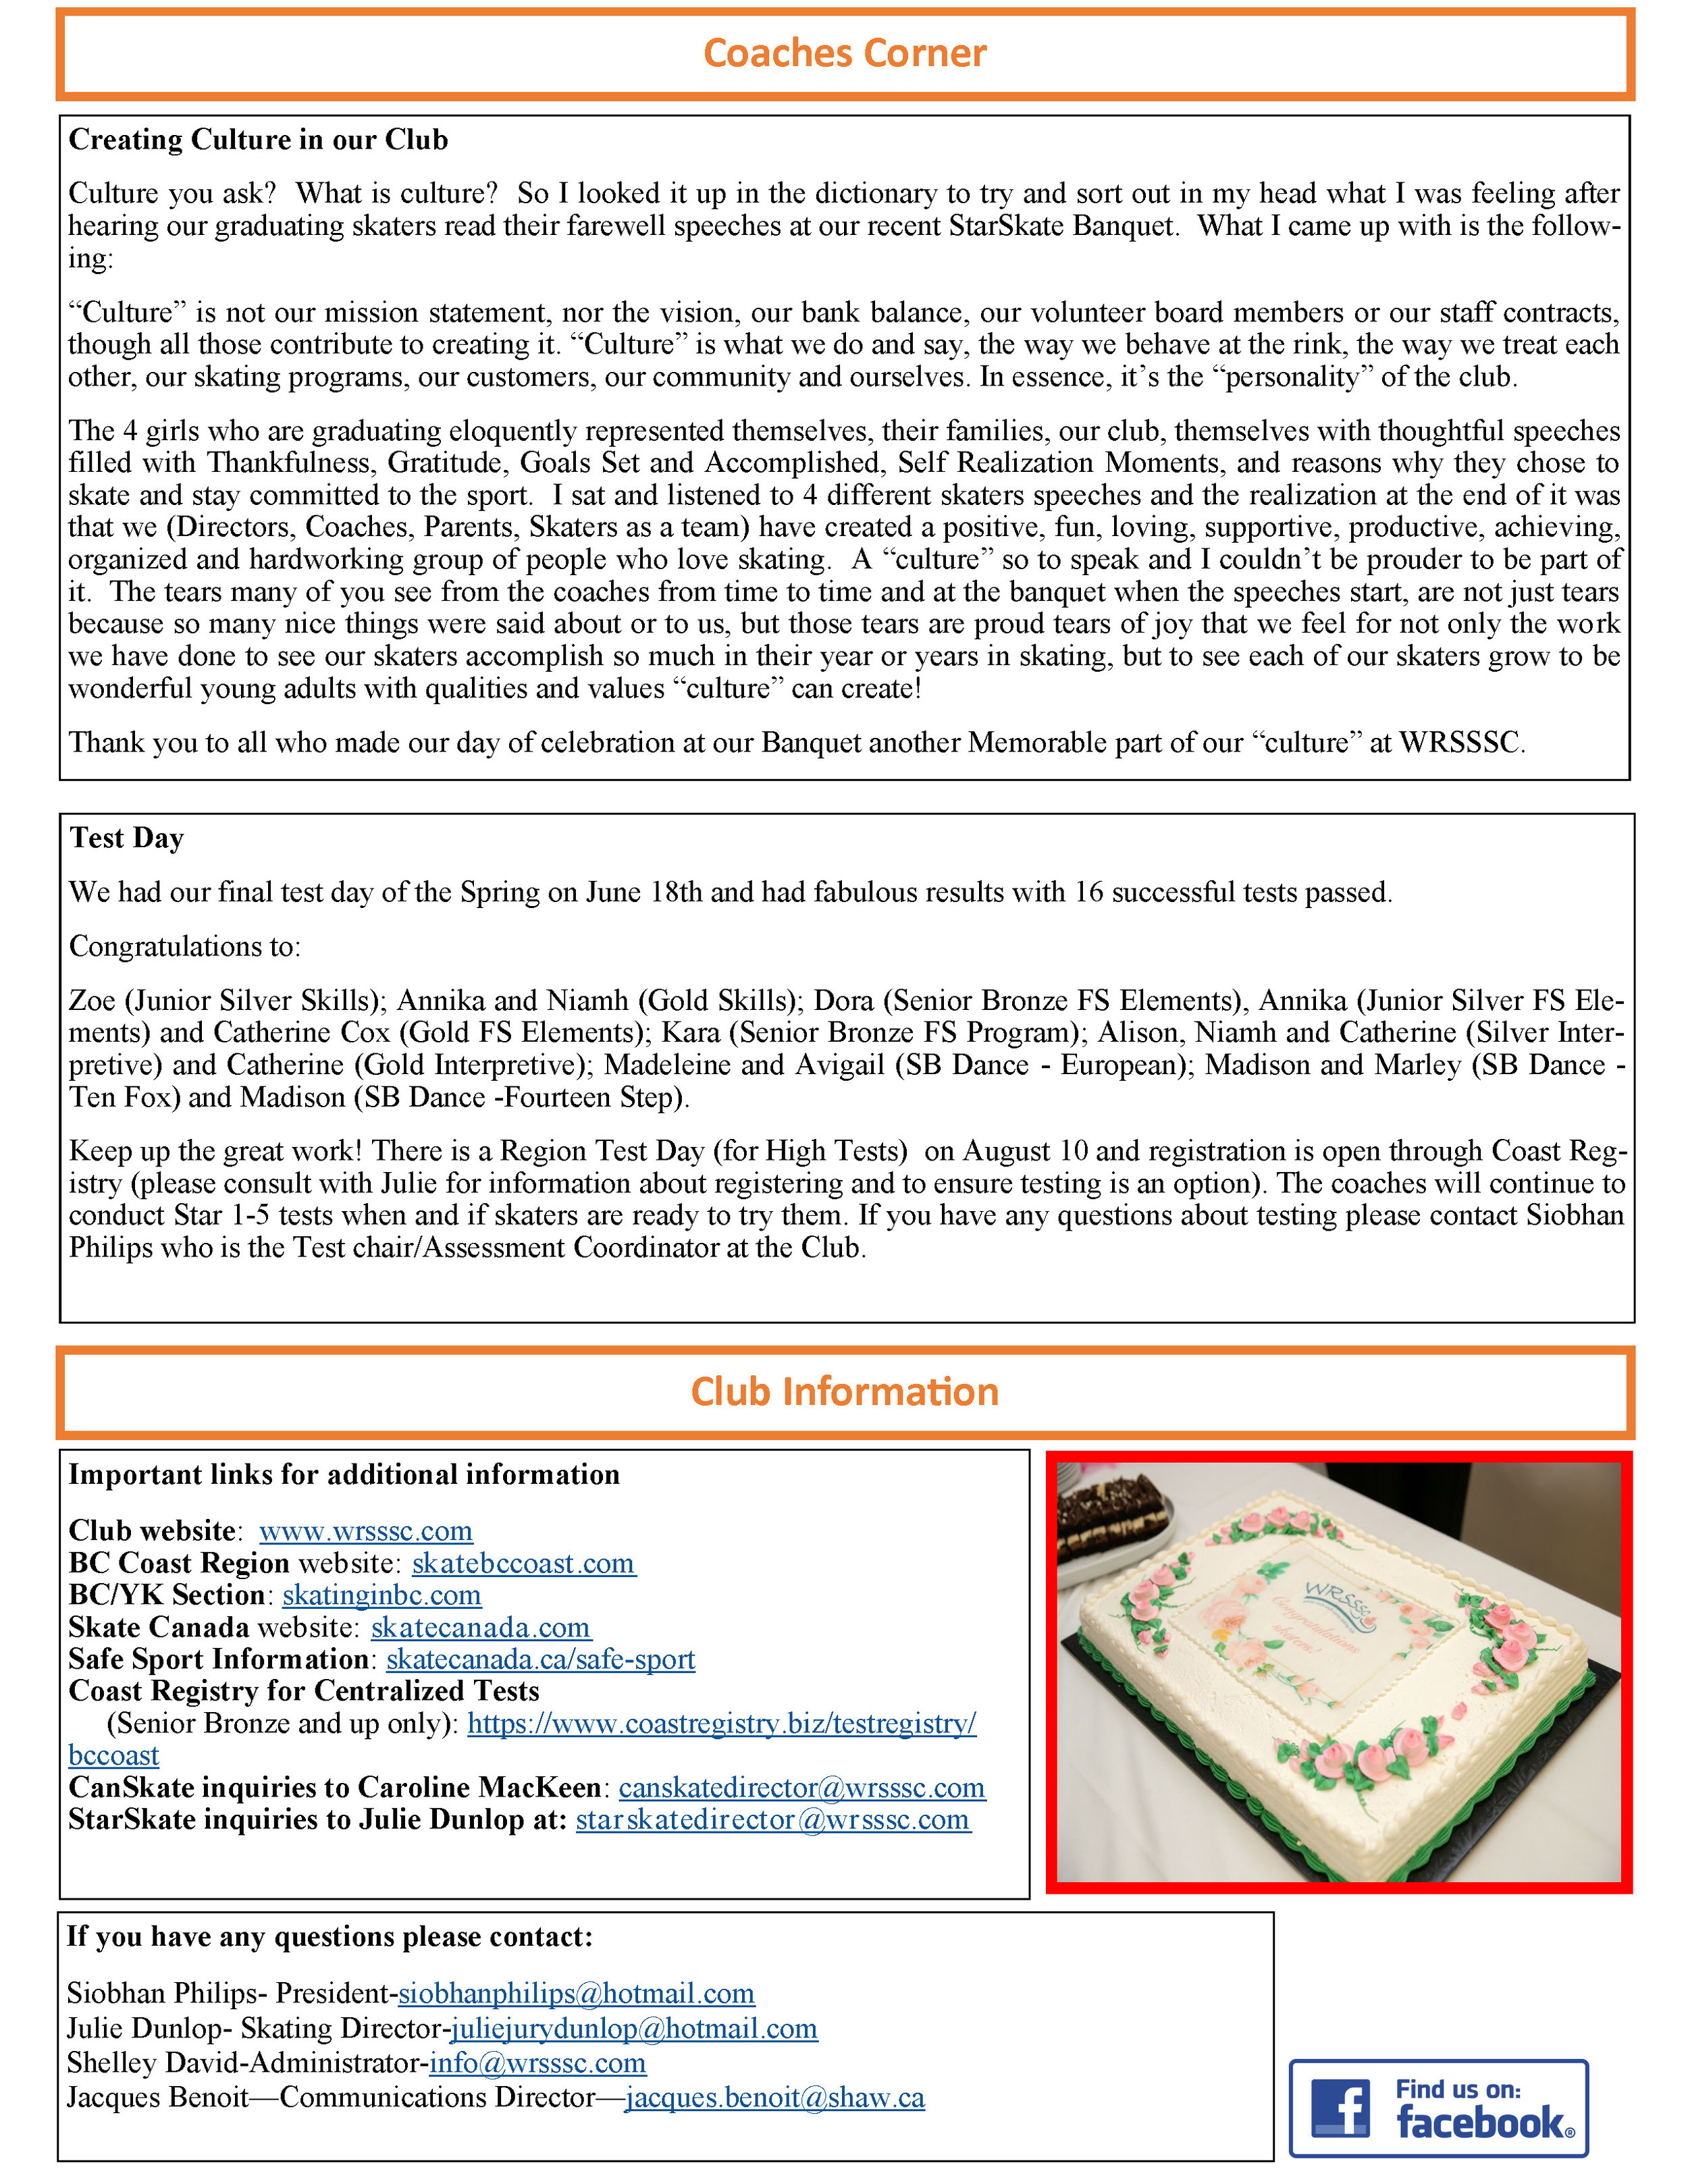 WRSSSC Newsletter June-July 2019 3.jpg